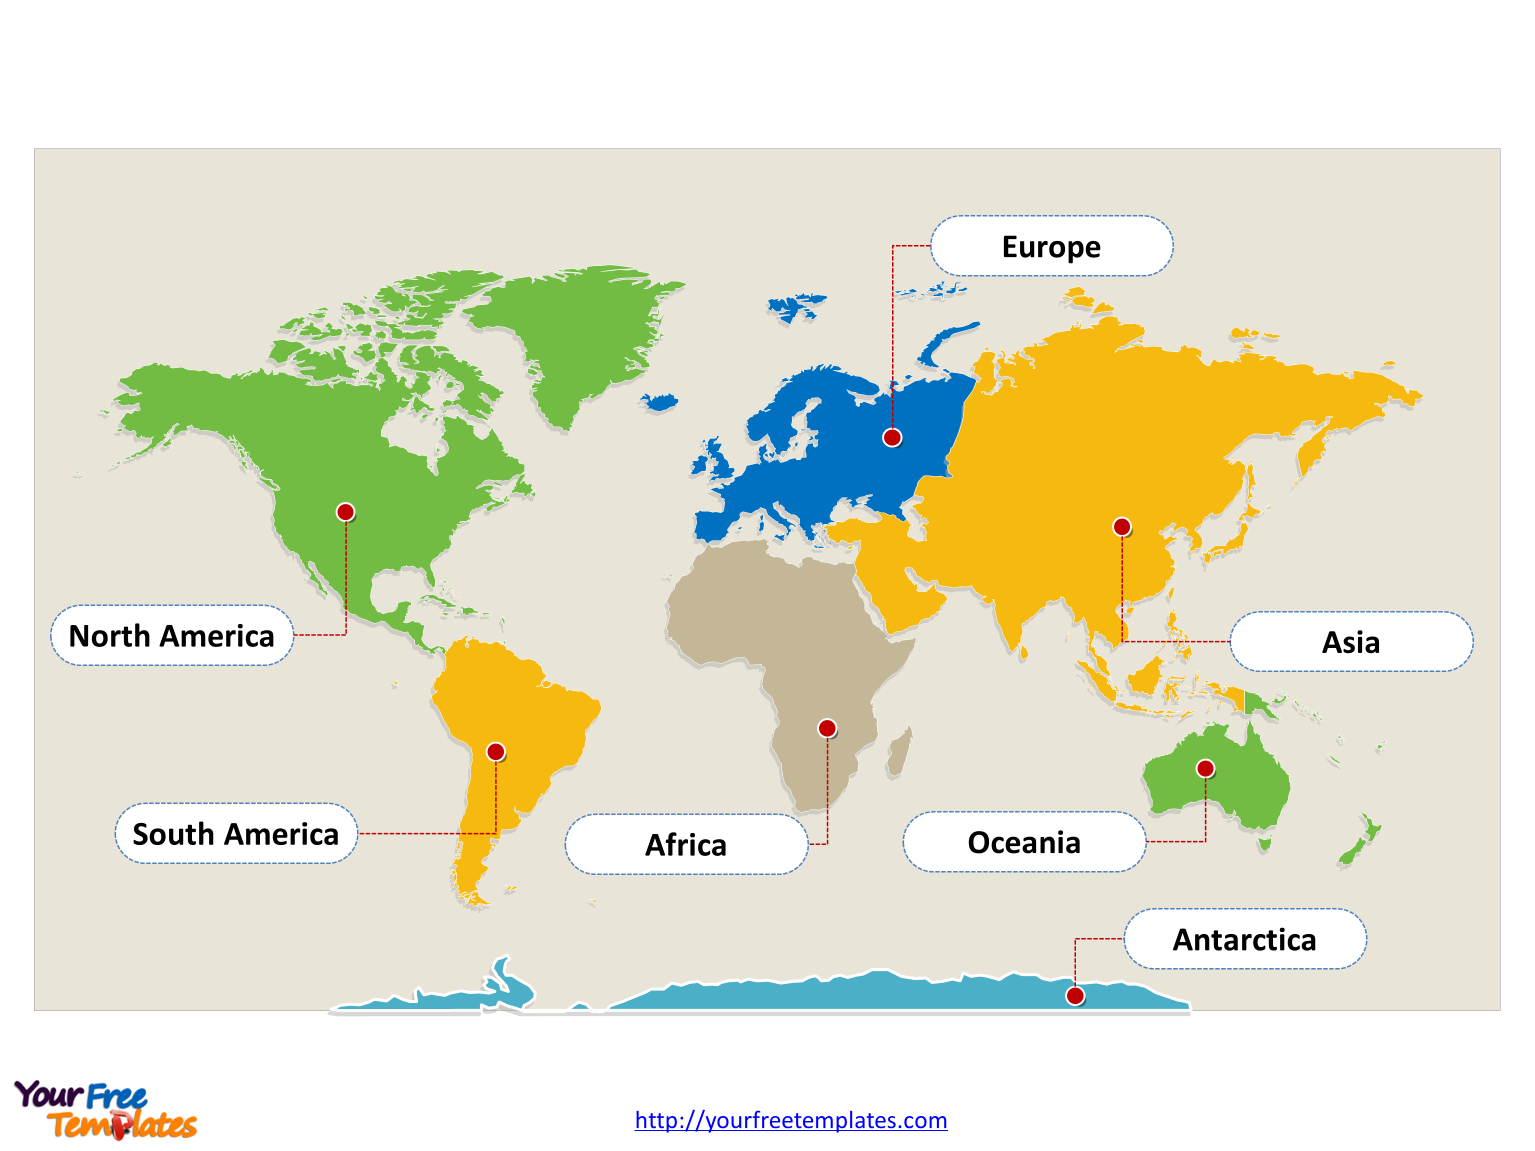 World Map With Continents - Free Powerpoint Templates - Blank Continent Map Printable